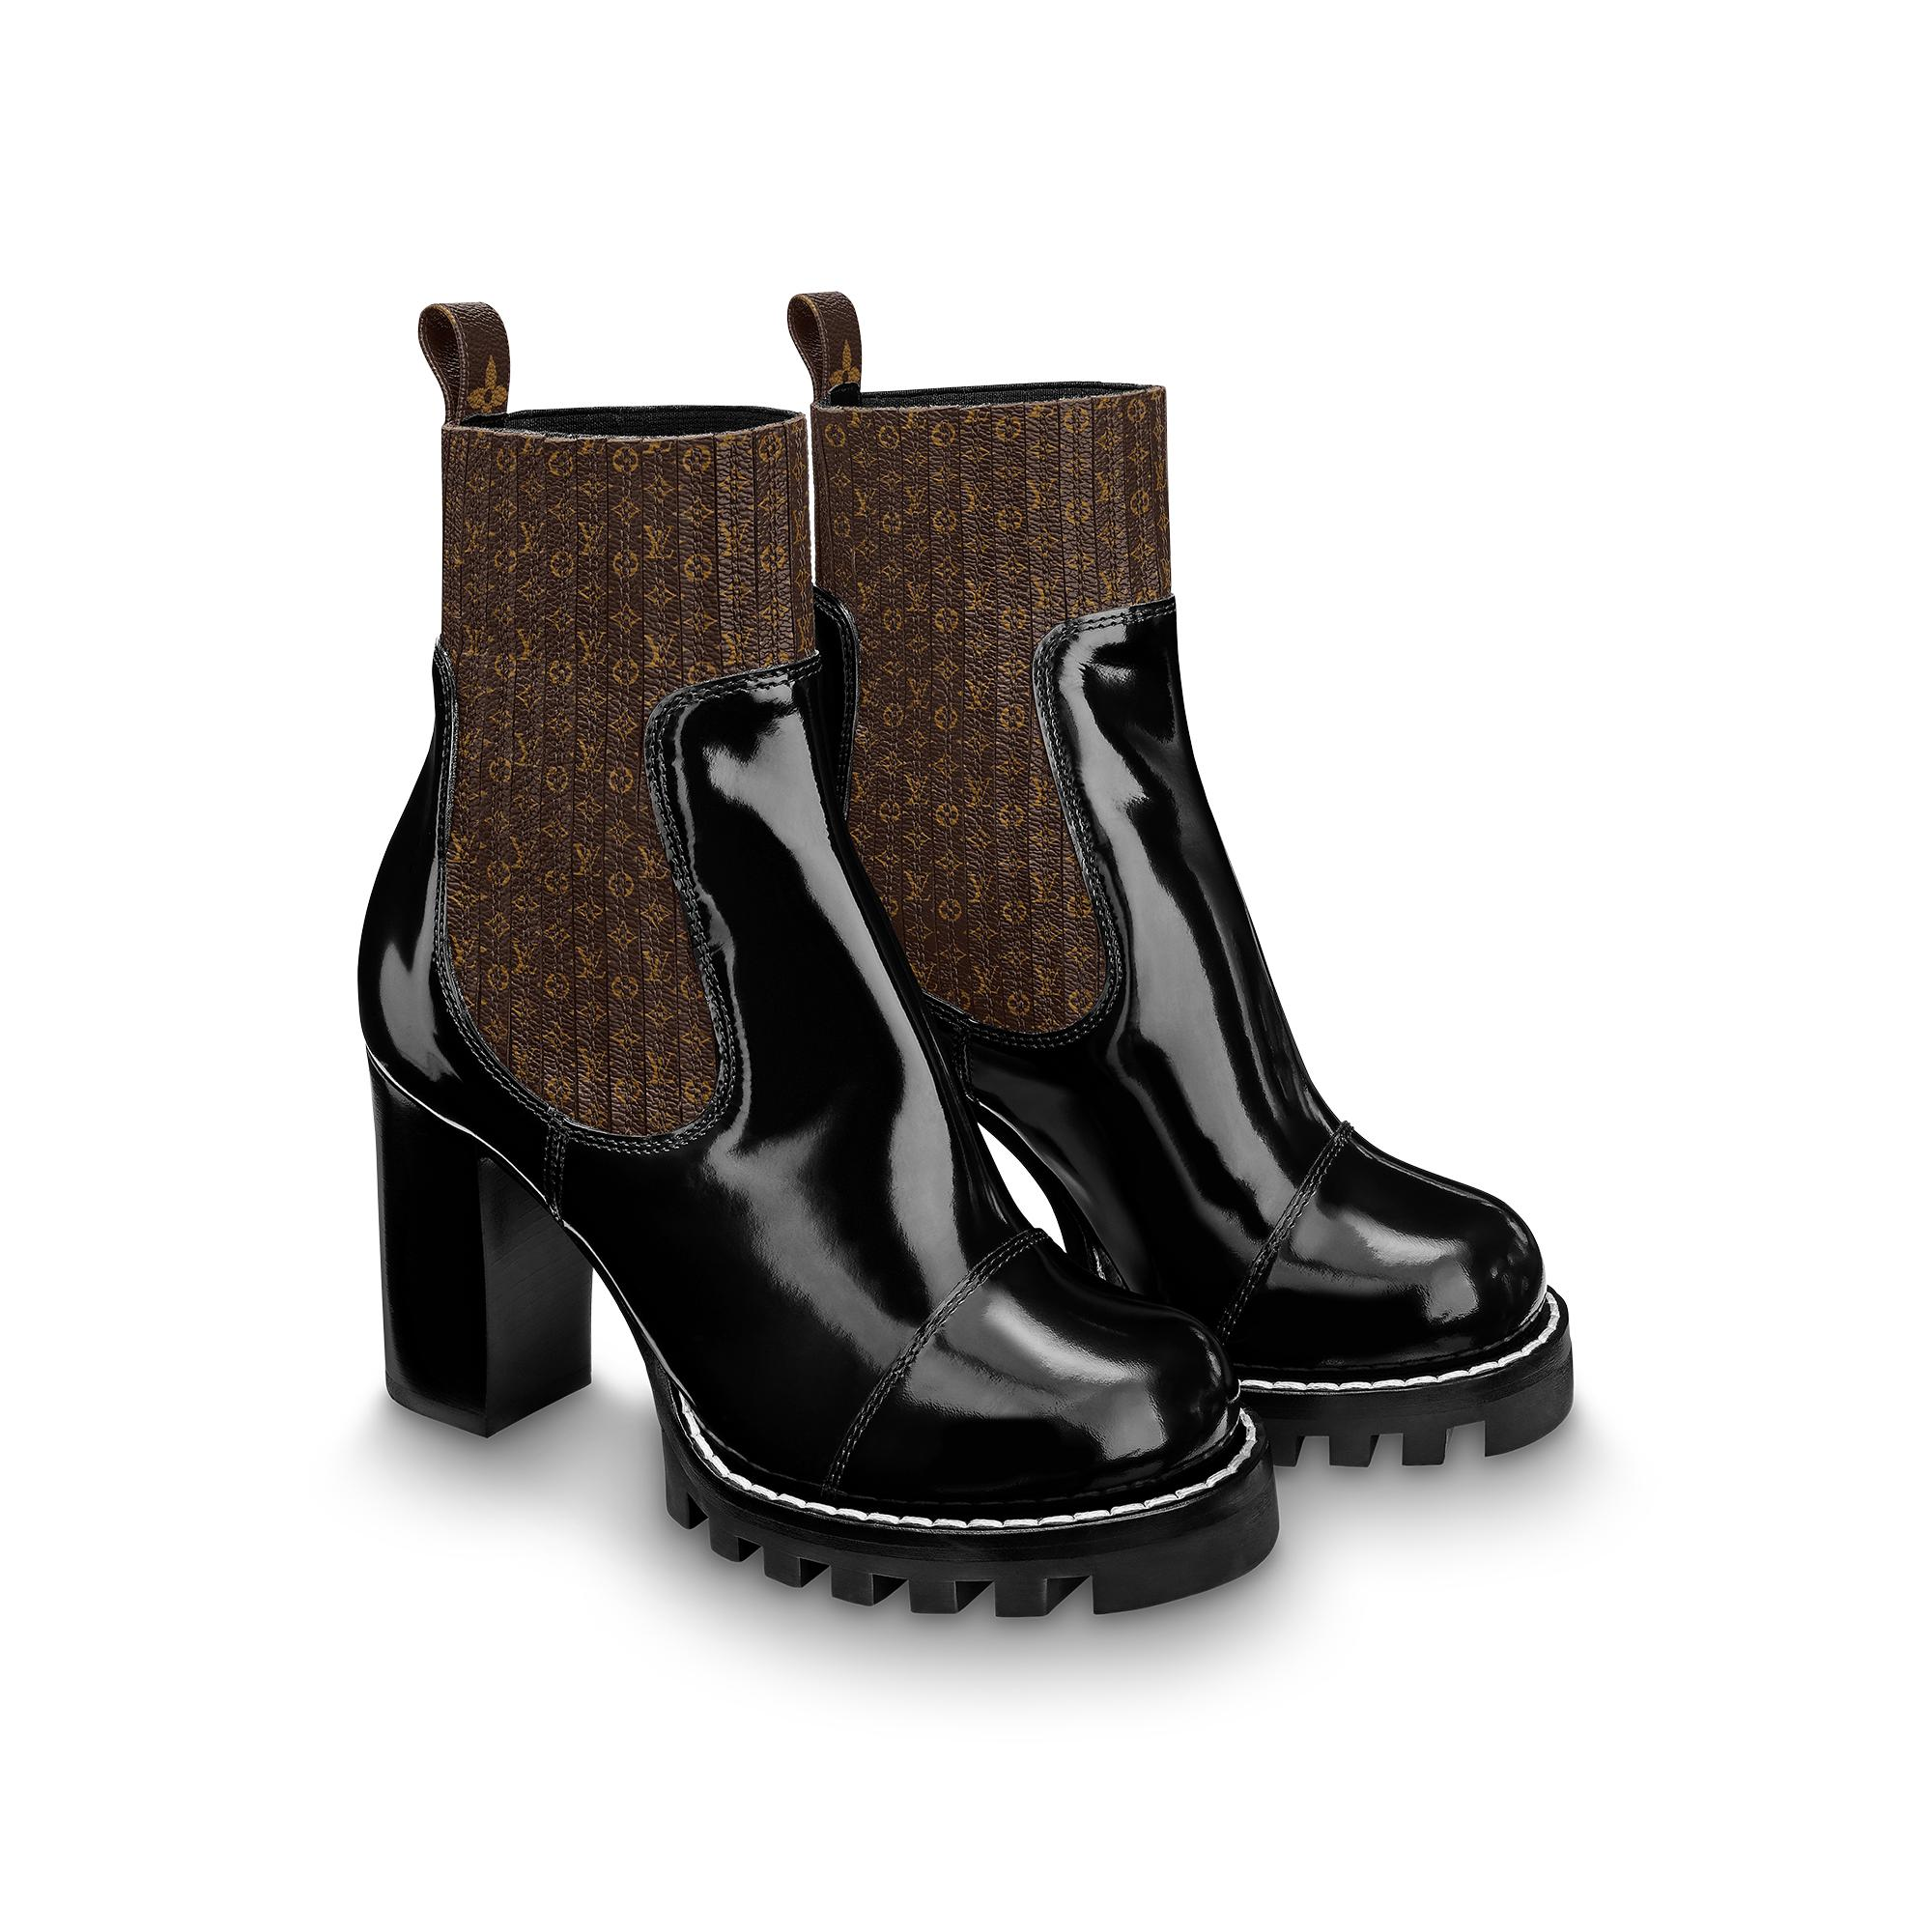 유럽직배송 루이비통 LOUIS VUITTON Star Trail Ankle Boots 1A63TQ